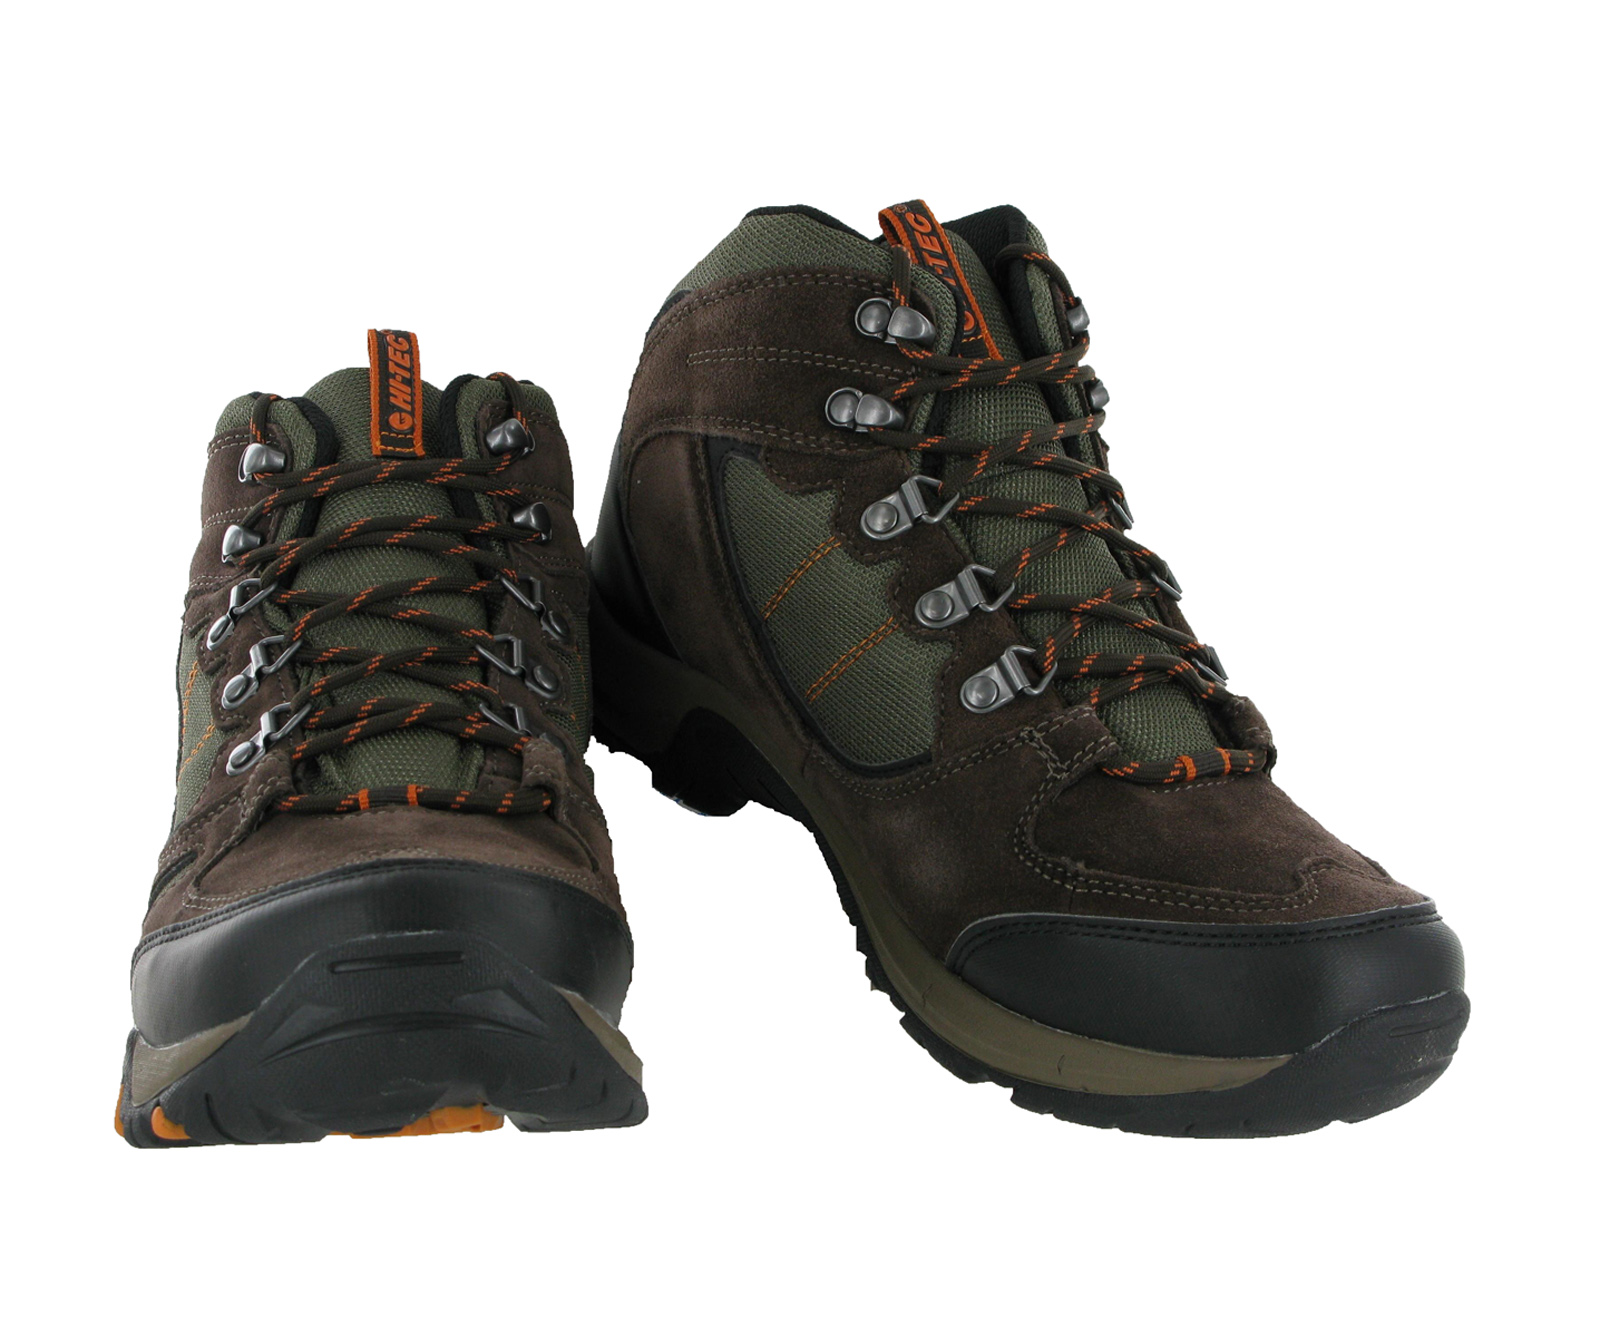 Mens-Hi-tec-Falcon-Brown-Leather-Waterproof-Walking-Hiking-Boots-Size-7-16